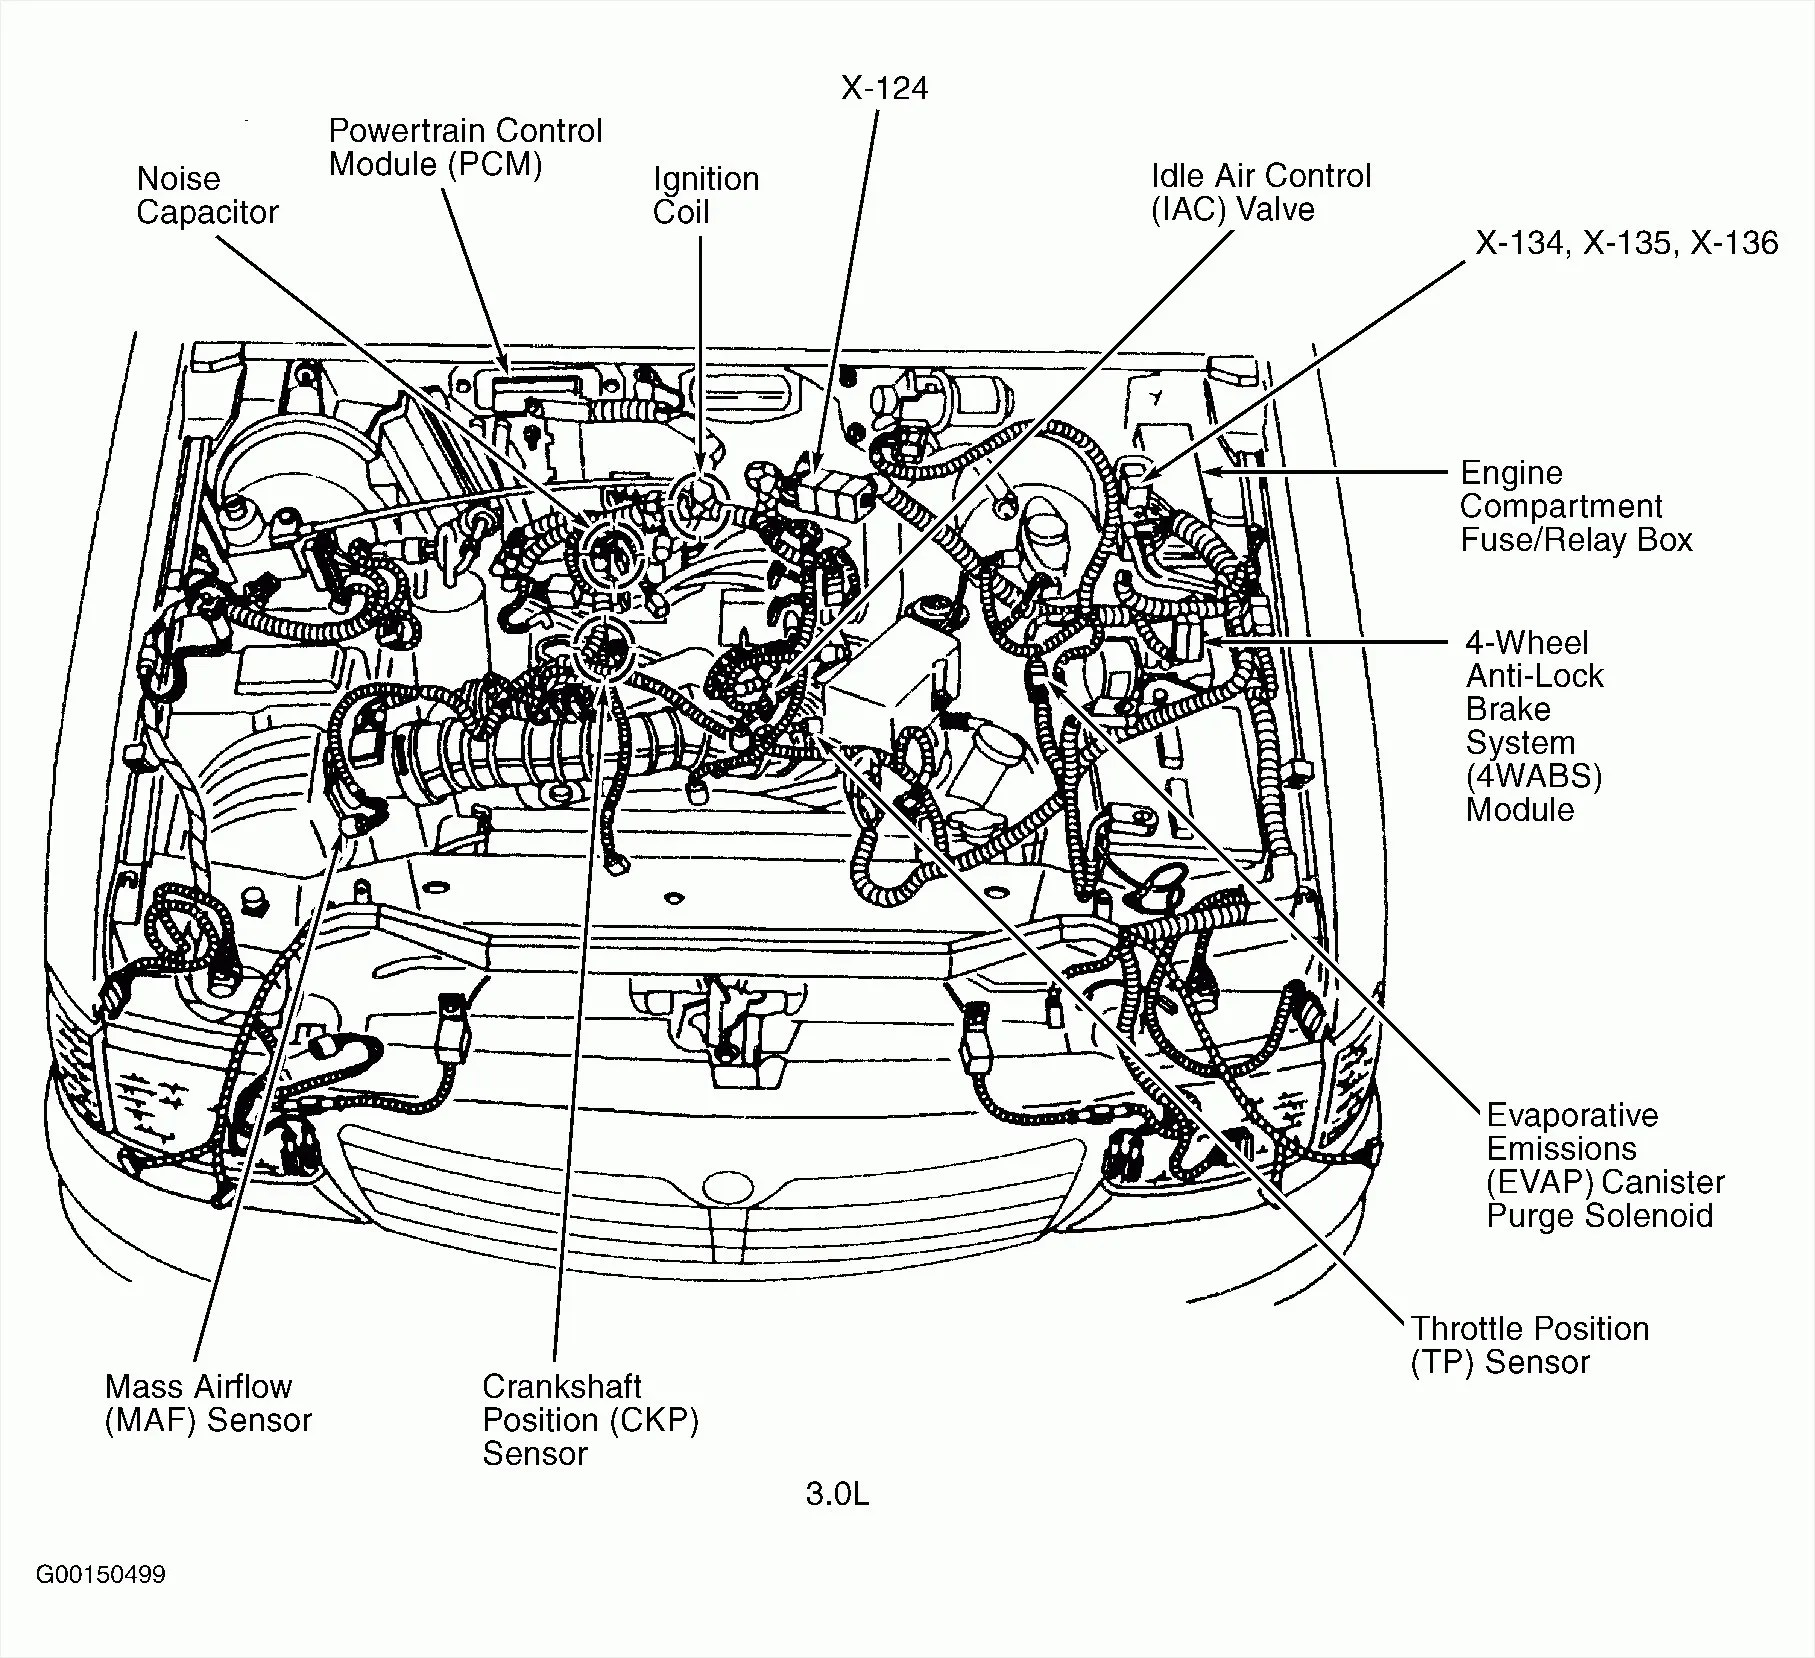 hight resolution of 05 chevy trailblazer engine diagram another wiring diagram 2003 trailblazer 4 2 engine diagram